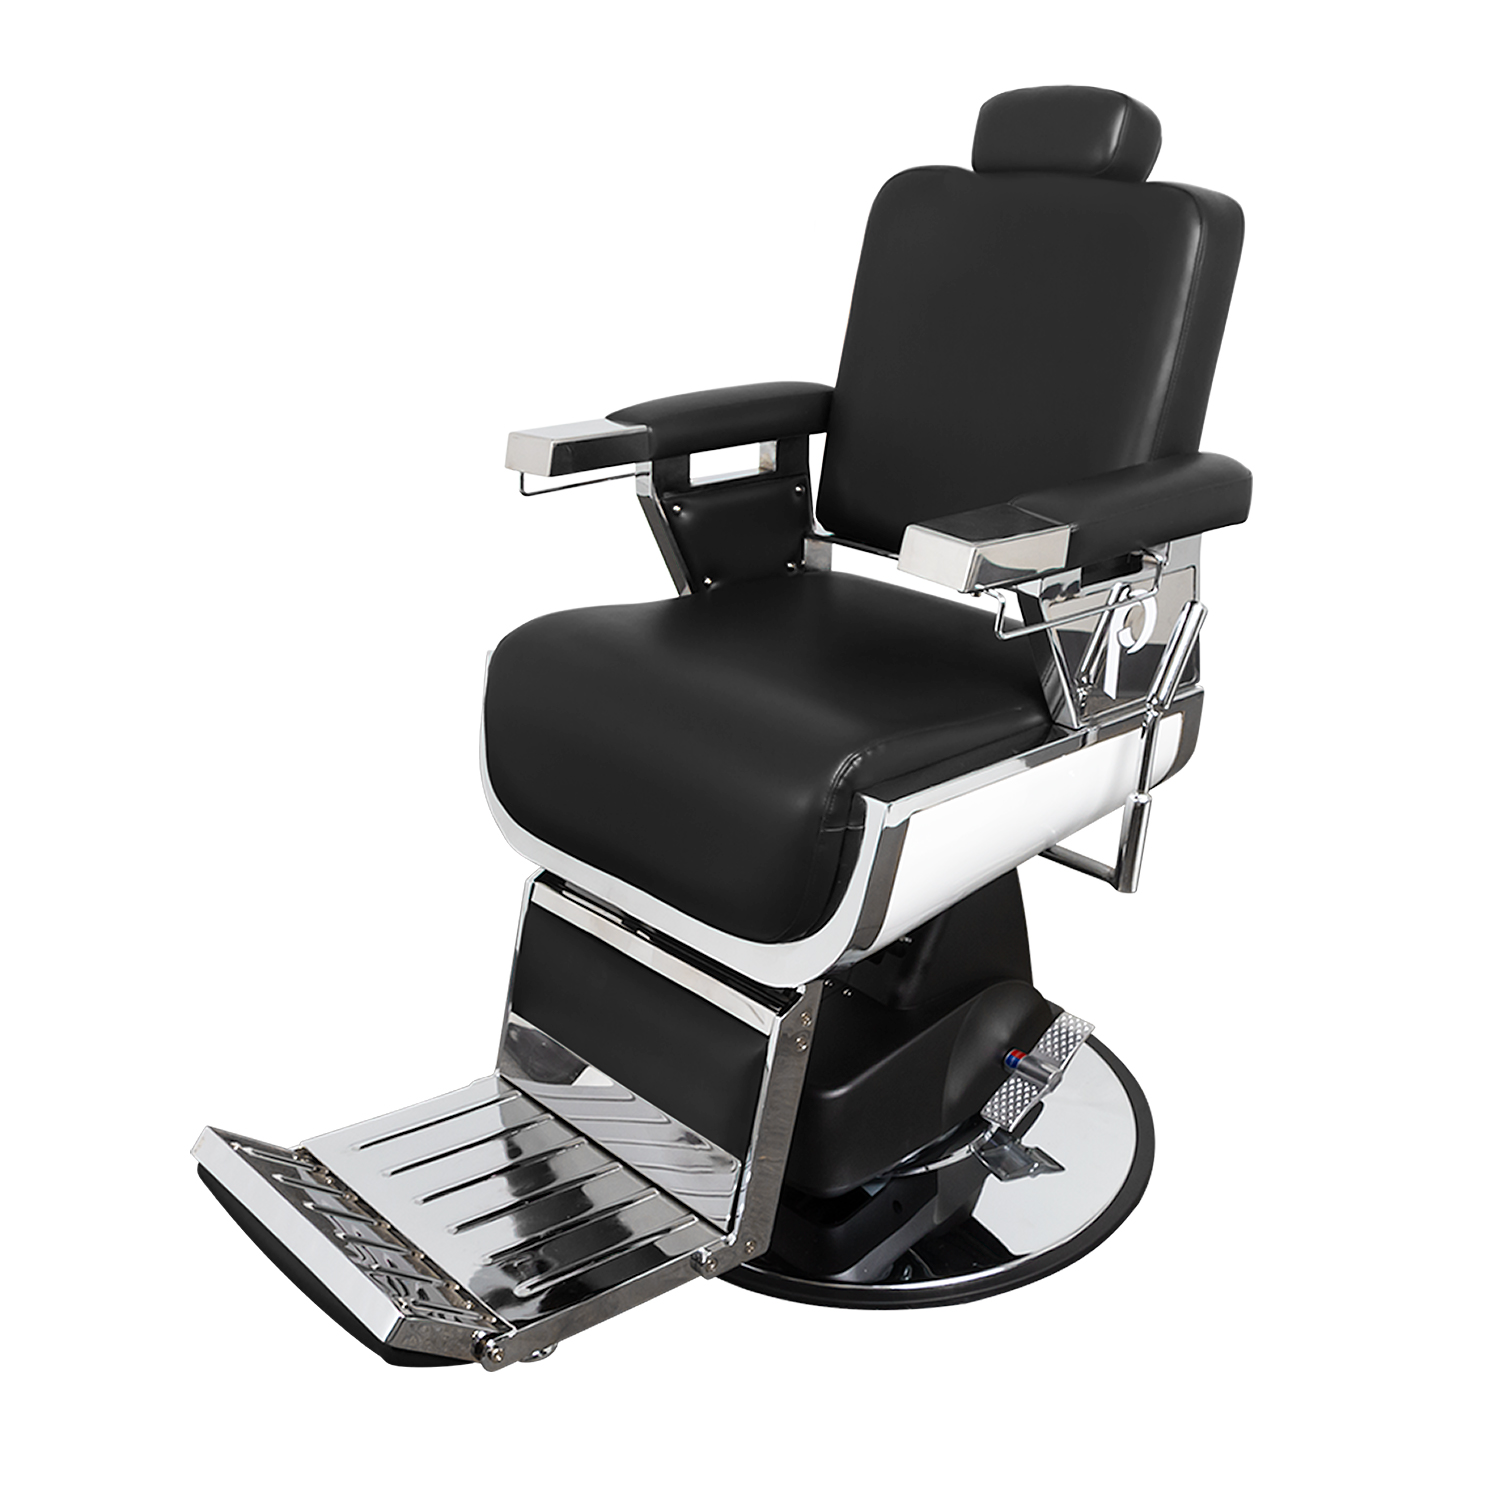 Pibbs 660 Grande Hydraulic Barber Chair alternative product image 2